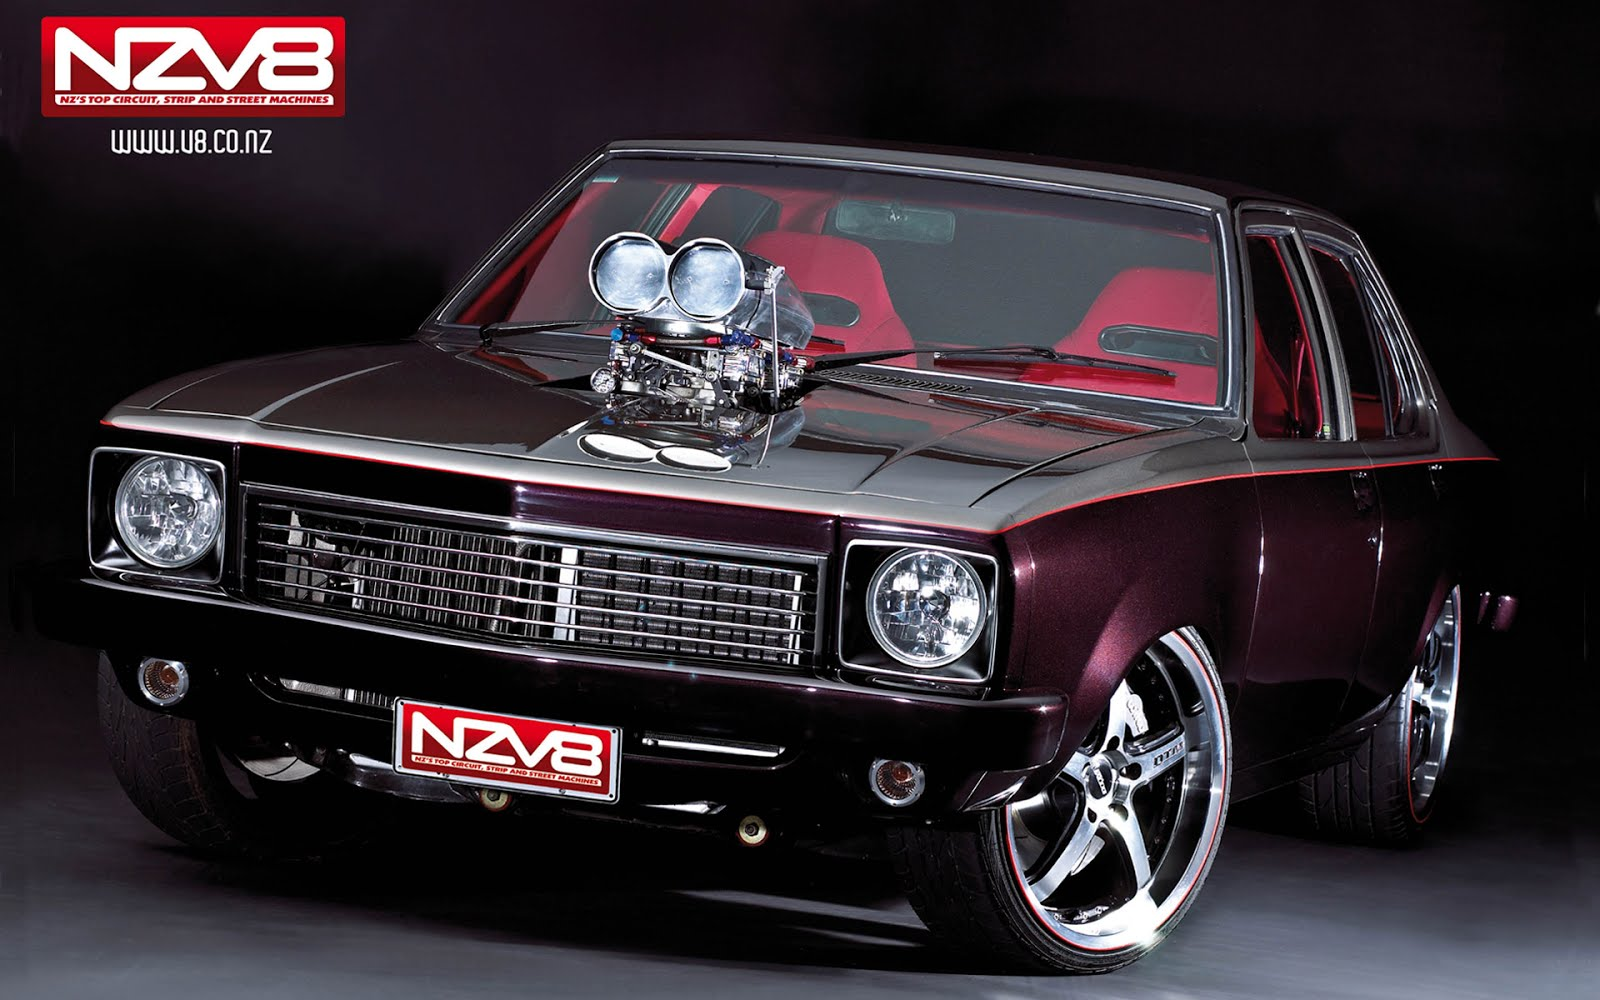 Pictures Gallery Of HOLDEN The Cars Wallpaper File Size: 113046 Bytes.  Dimensions: 1024 X 768 Pixels. HOLDEN The Cars Wallpaper , Car Wallpaper ,  HD Car ...